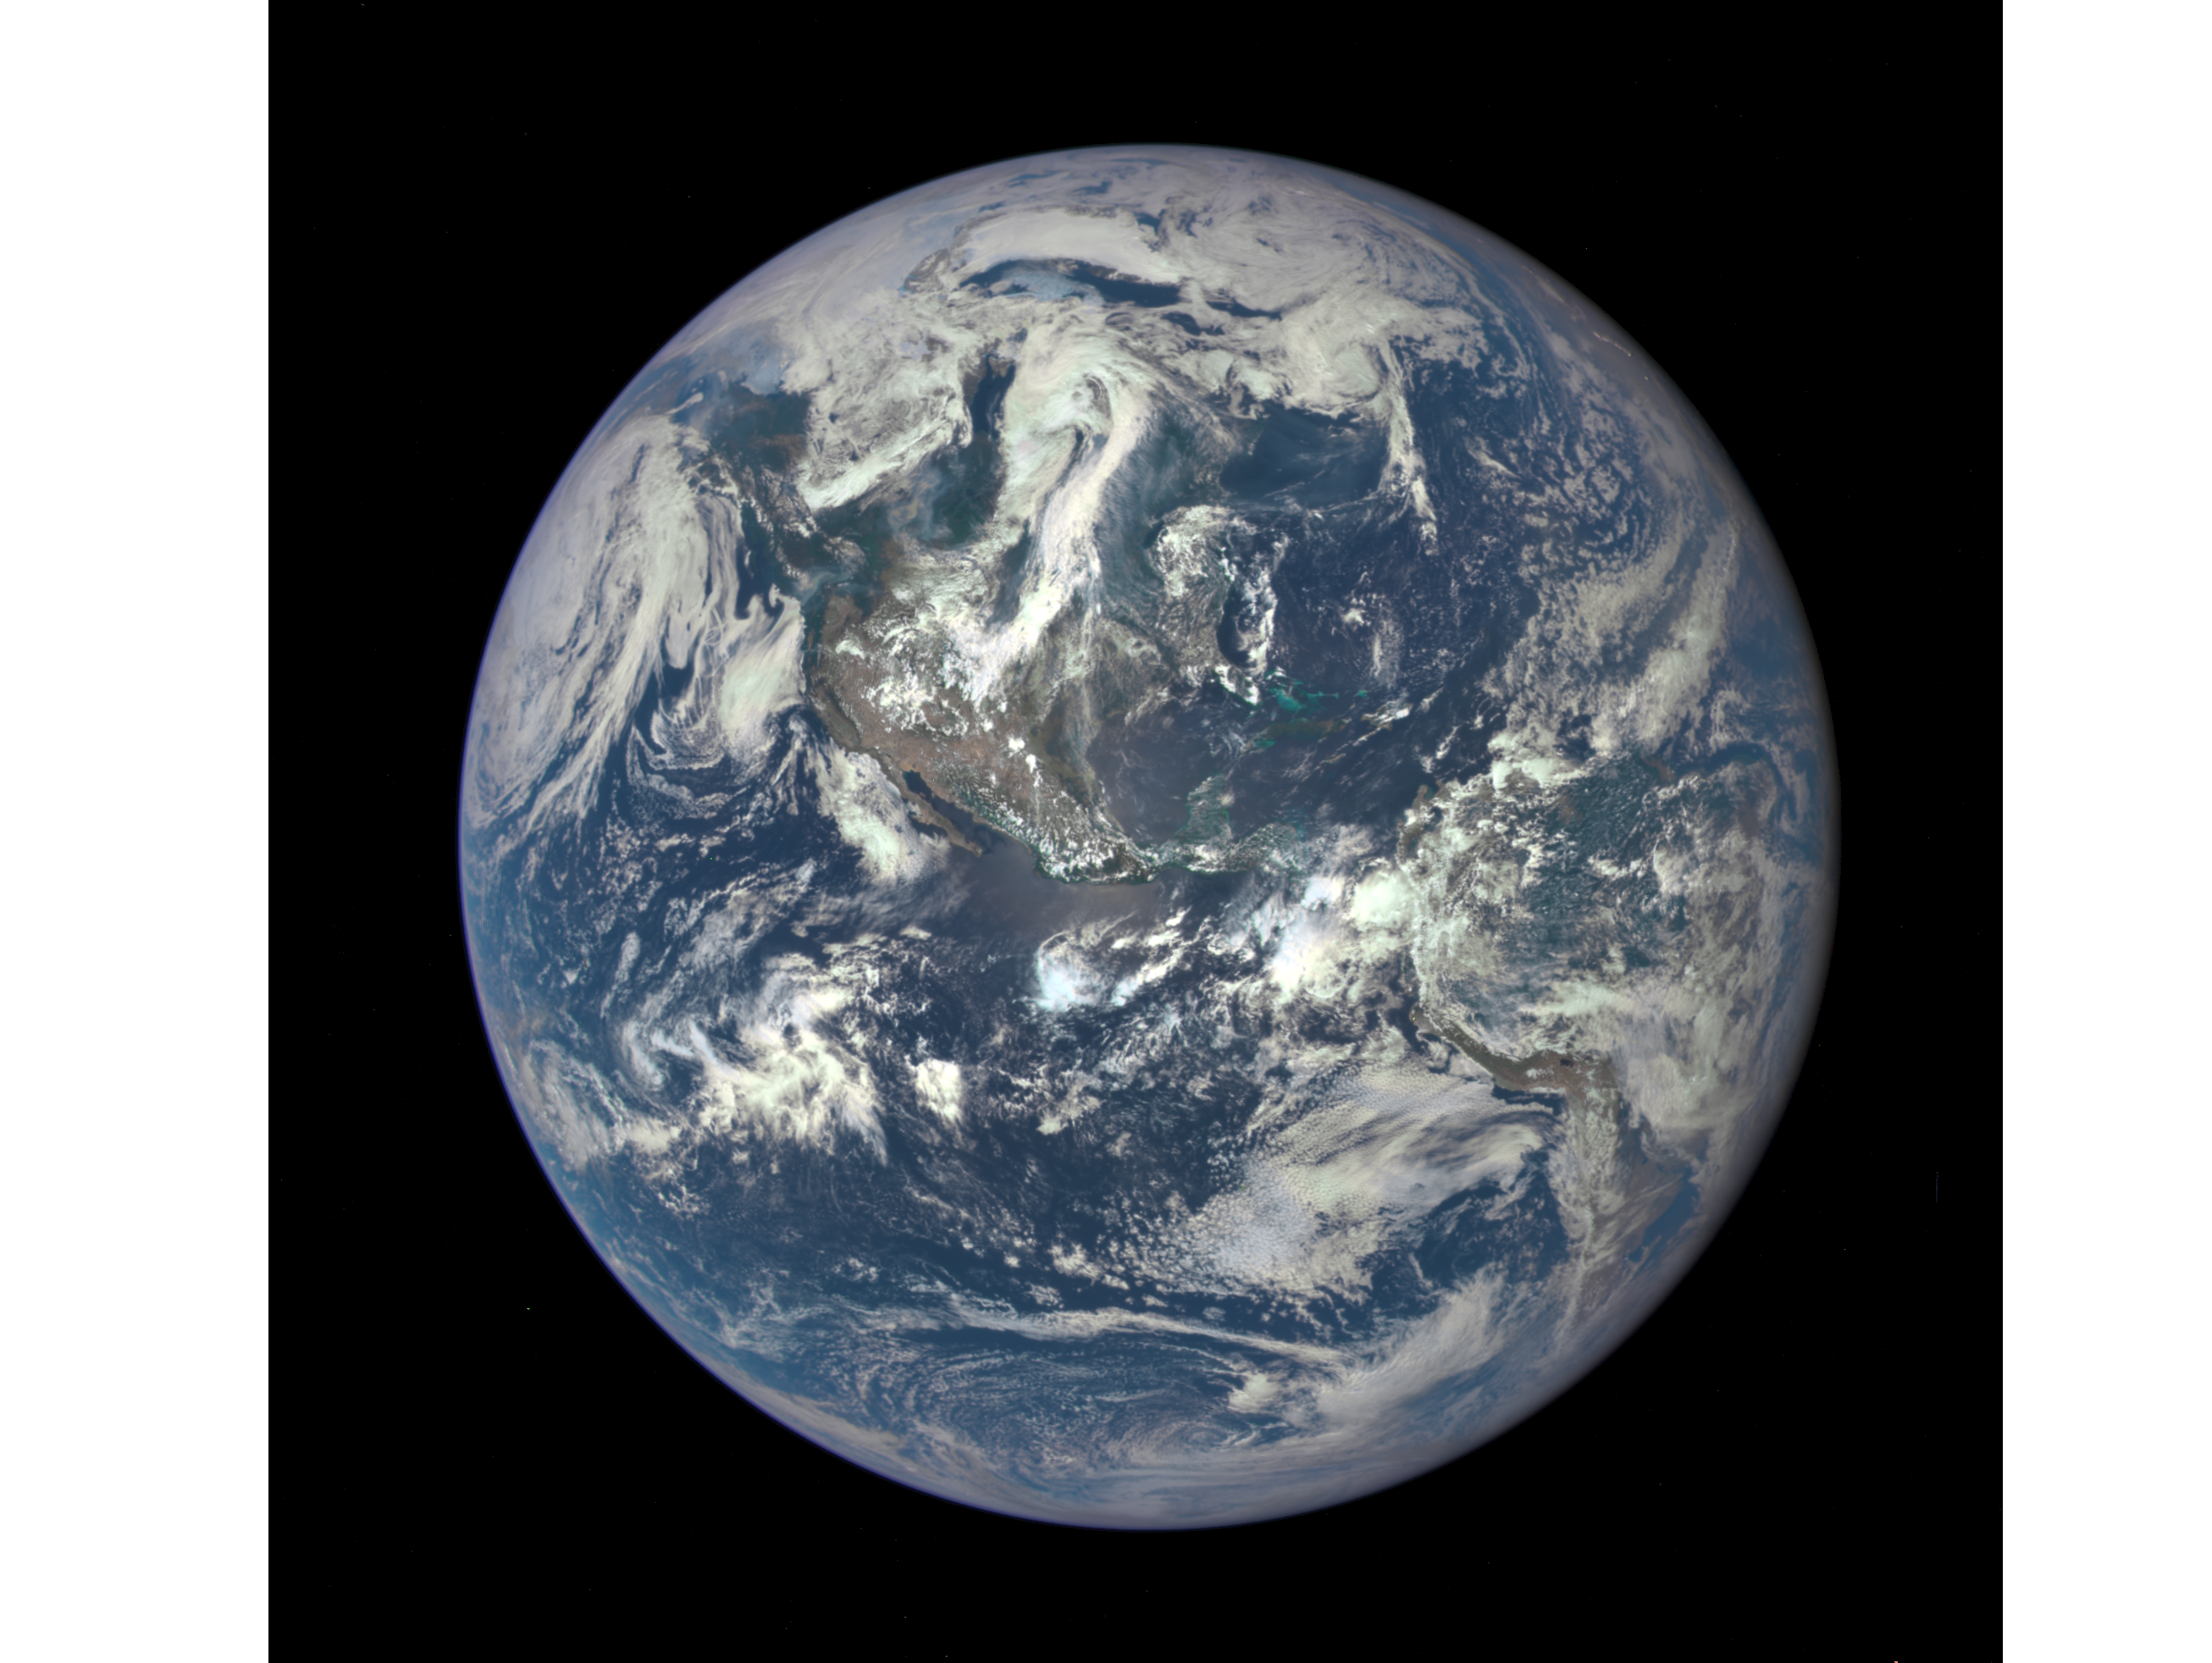 A recent photo of the Earth, as taken from the DSCVR satellite one million miles from Earth.